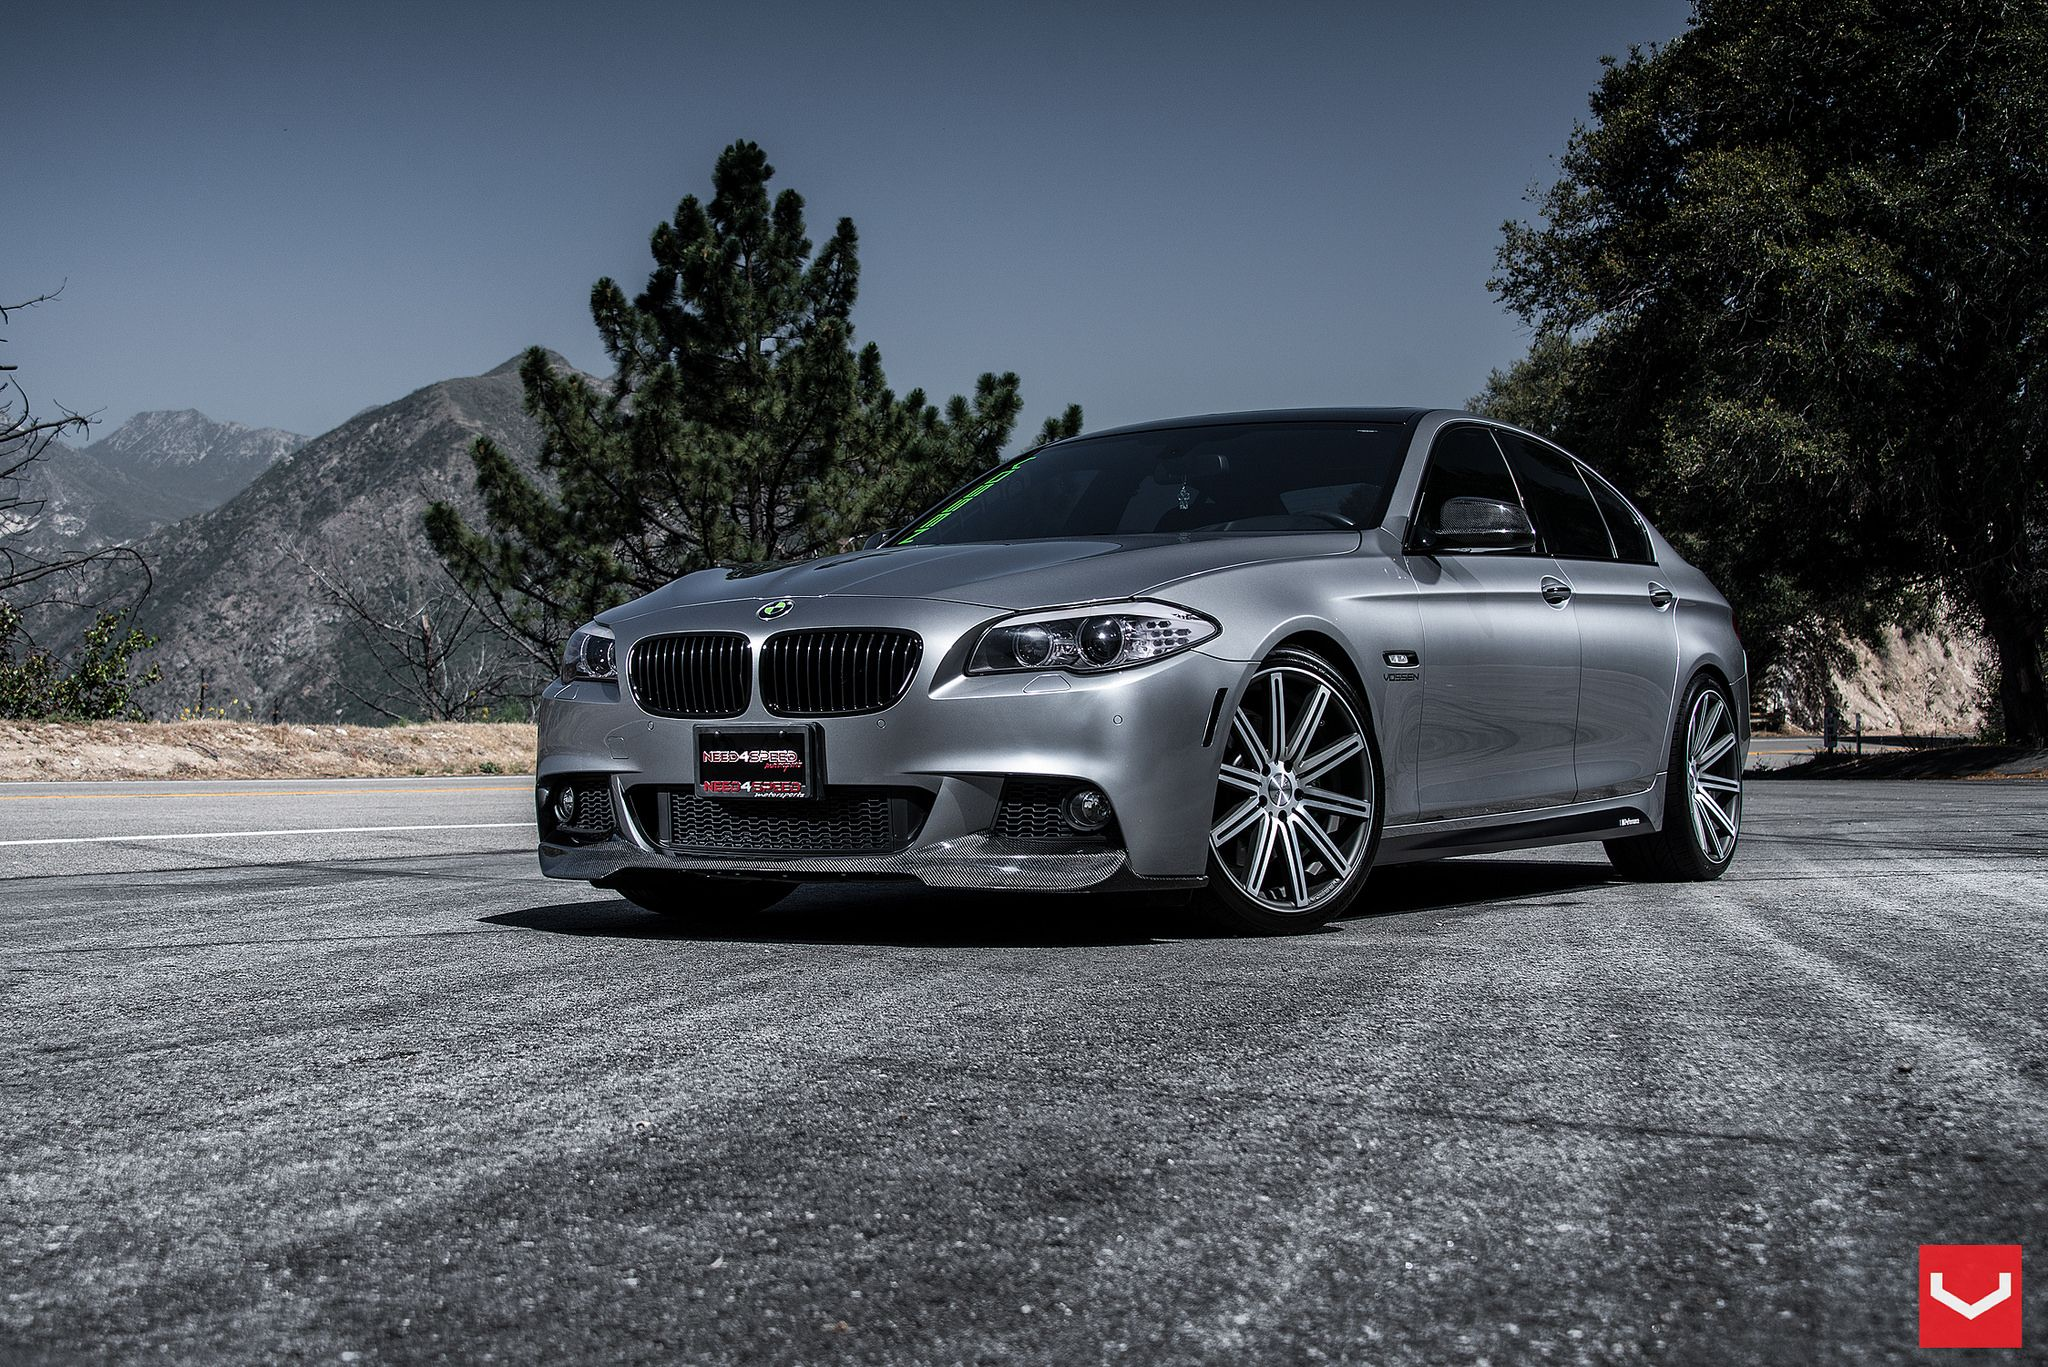 Bmw f10 5 series on vossen wheels